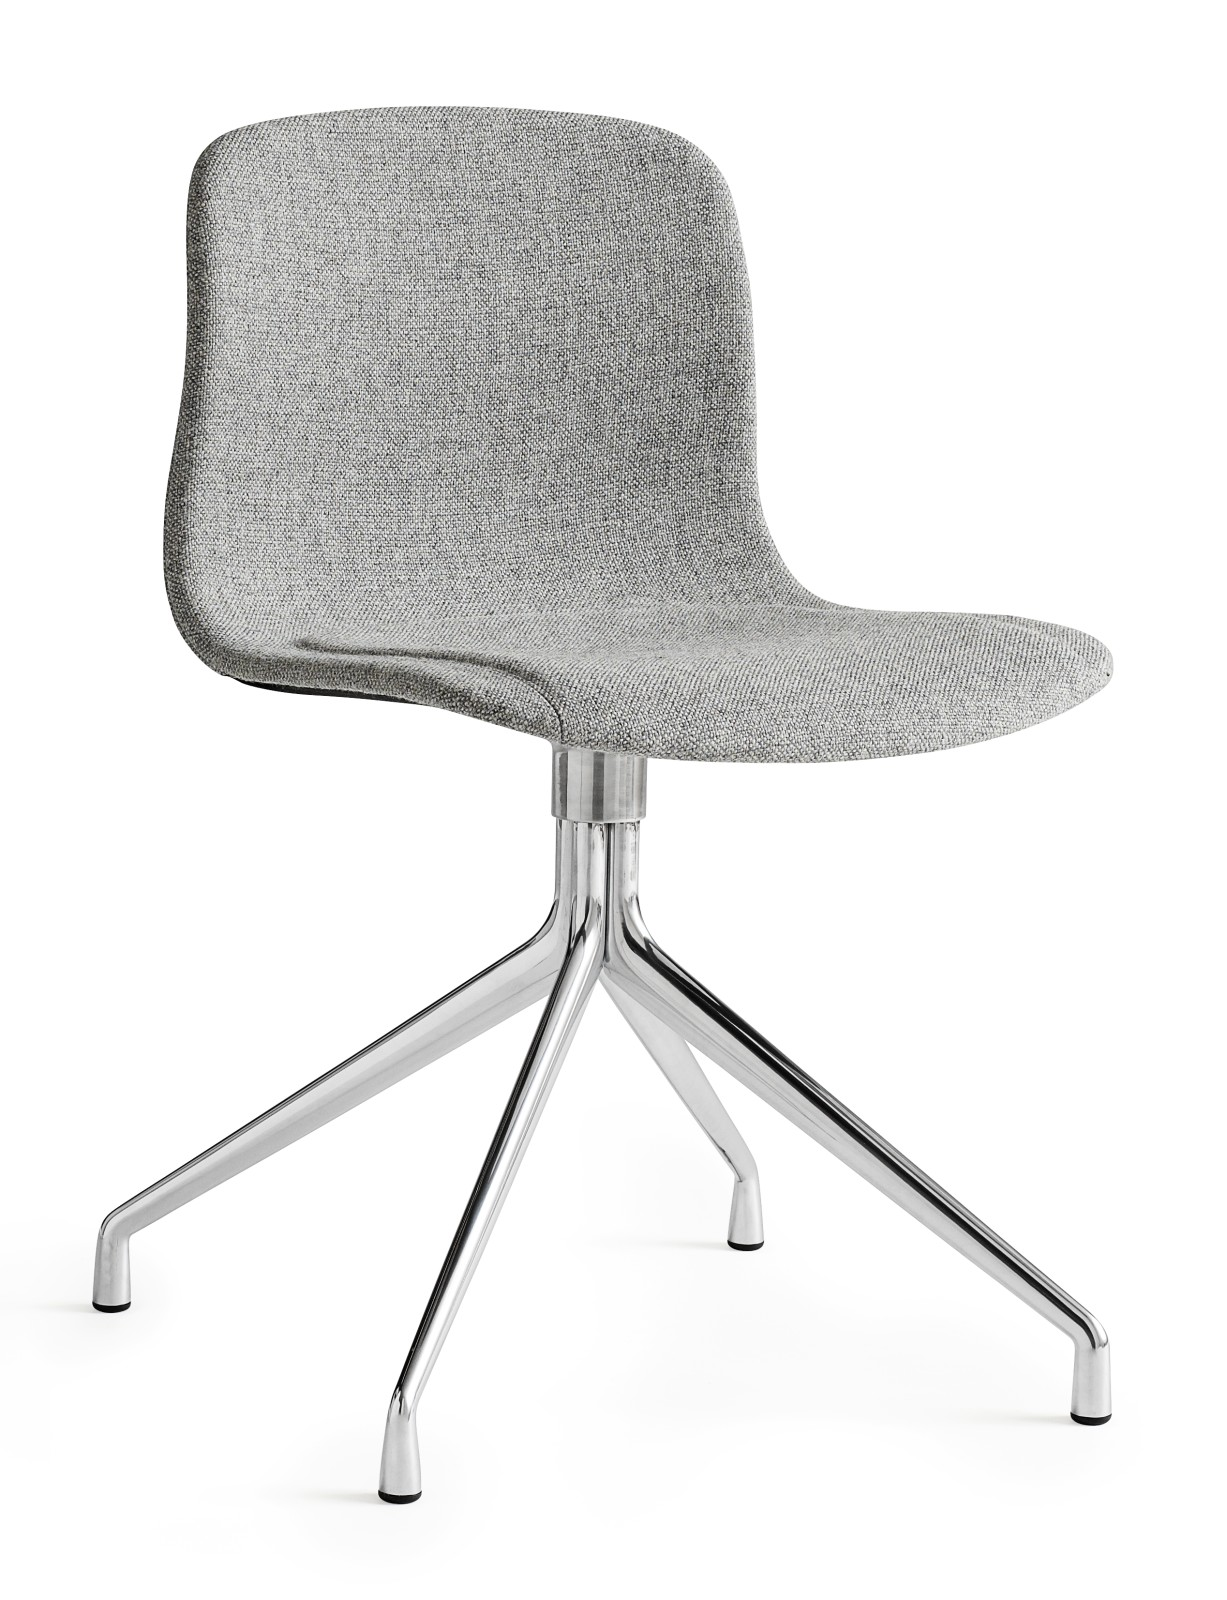 About A Chair AAC11 Hallingdal 65 100, Polished Aluminium Base